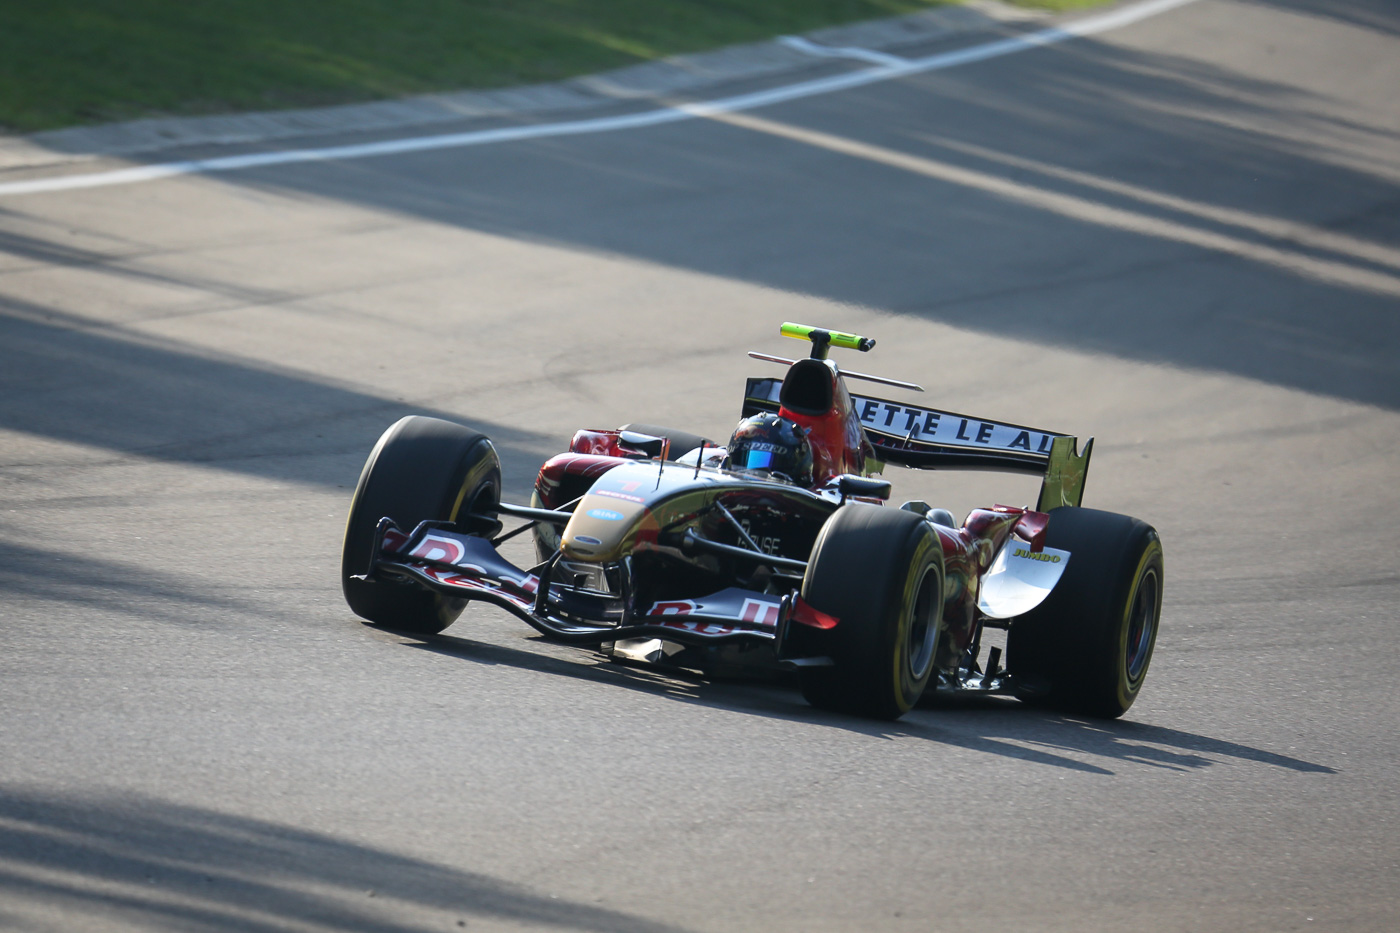 Ingo Gerstl on track in Imola 2017.